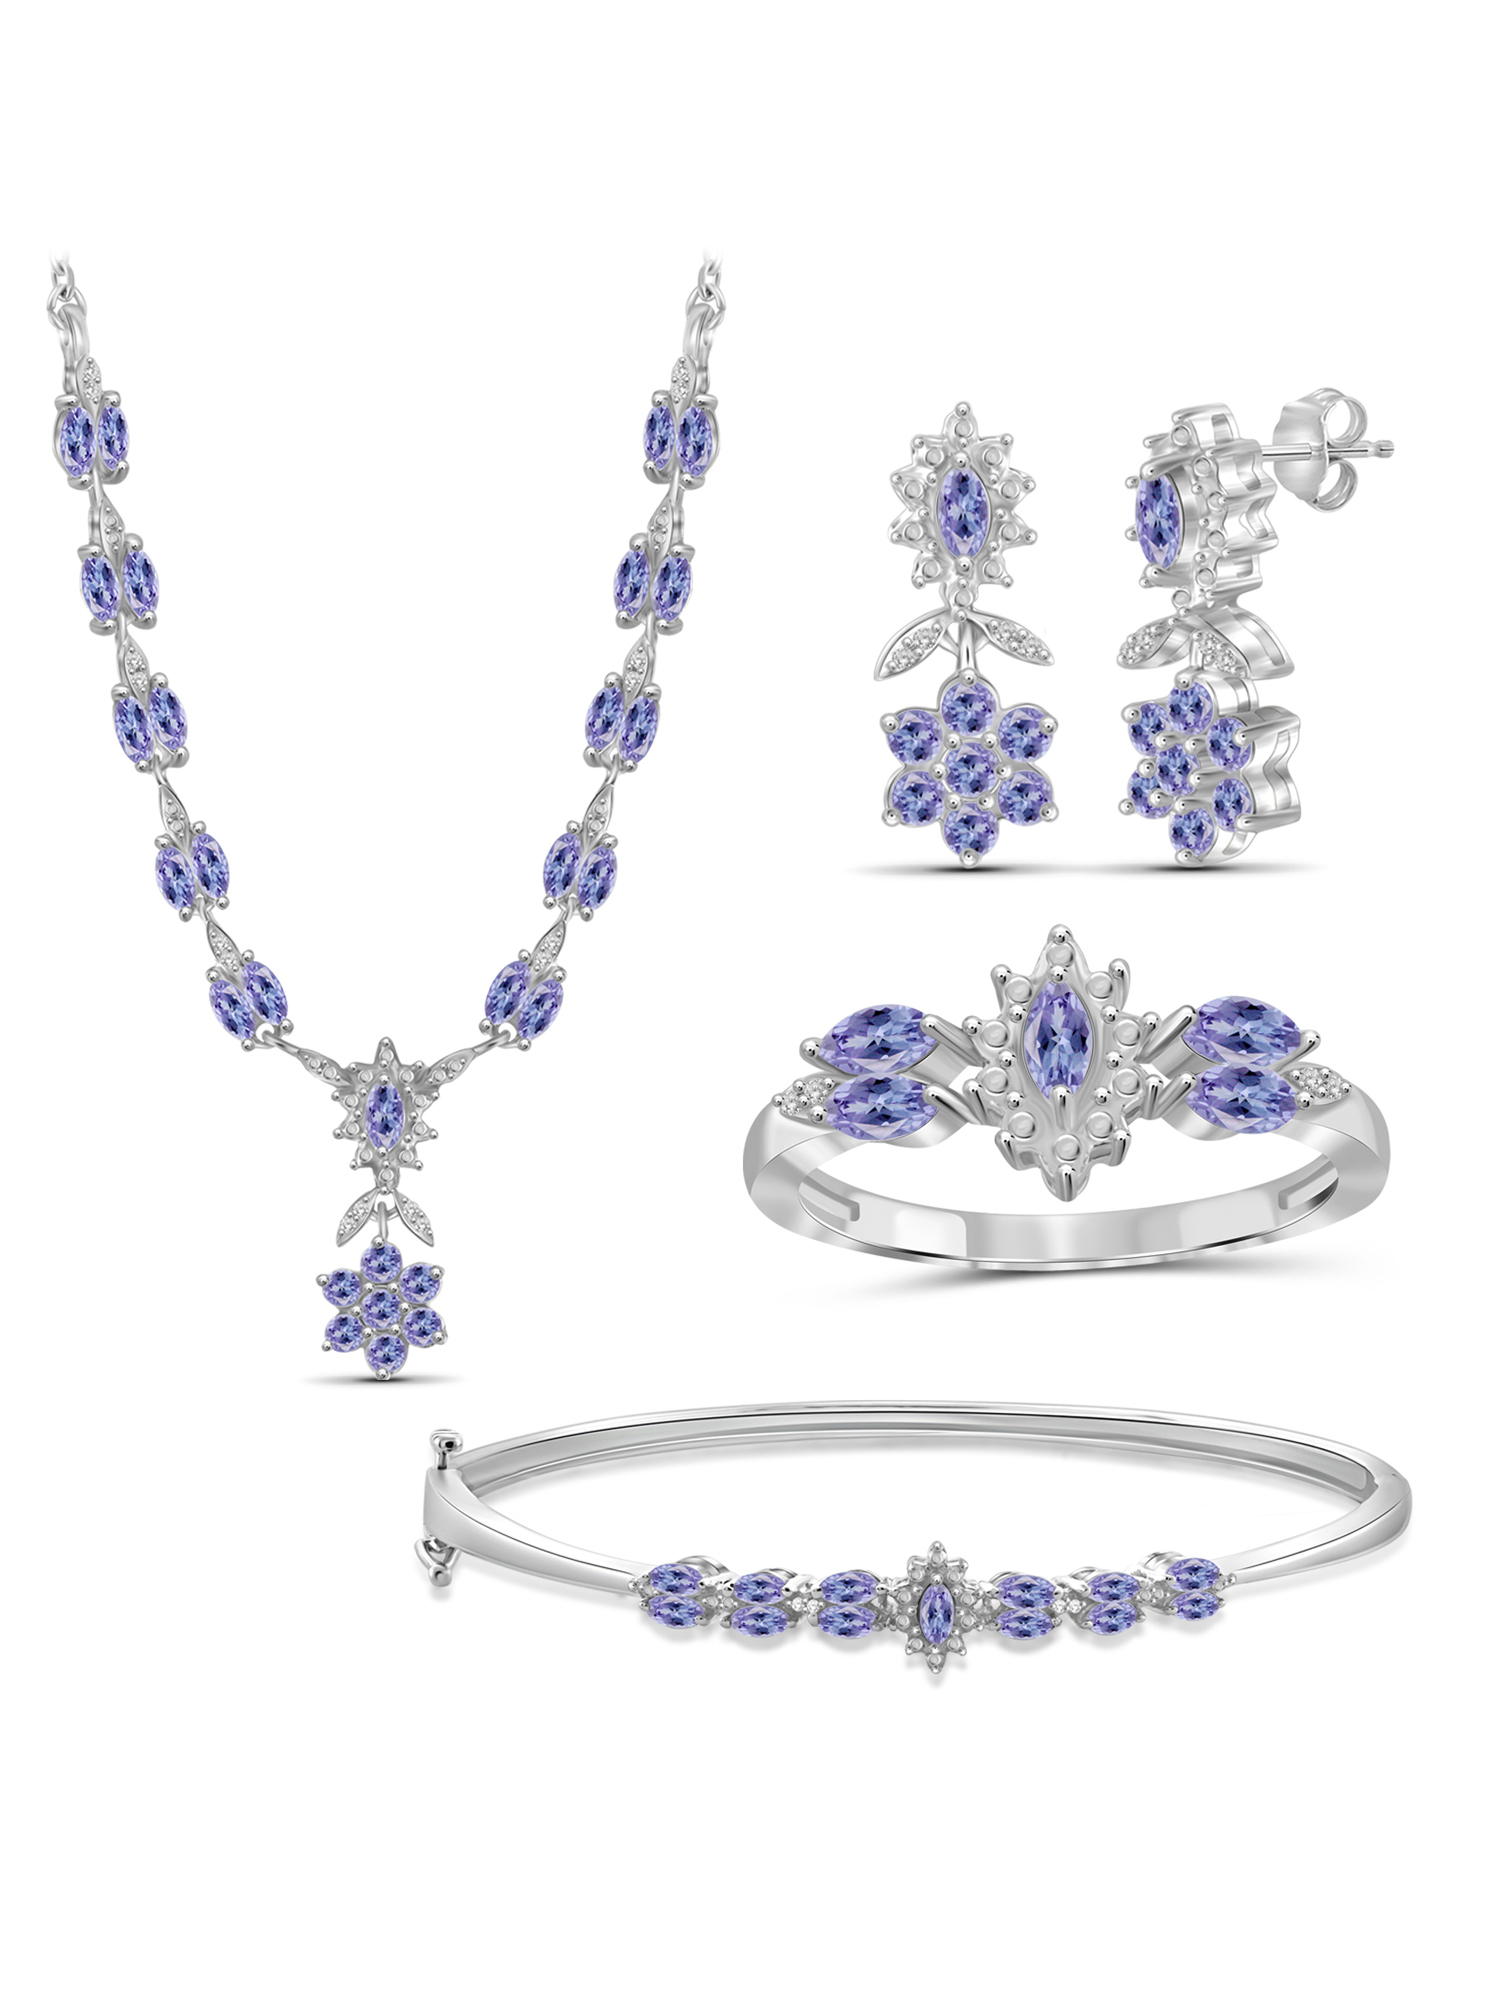 3 3/4 Carat T.G.W. Tanzanite And White Diamond Accent Sterling Silver 4-Piece Jewelry set